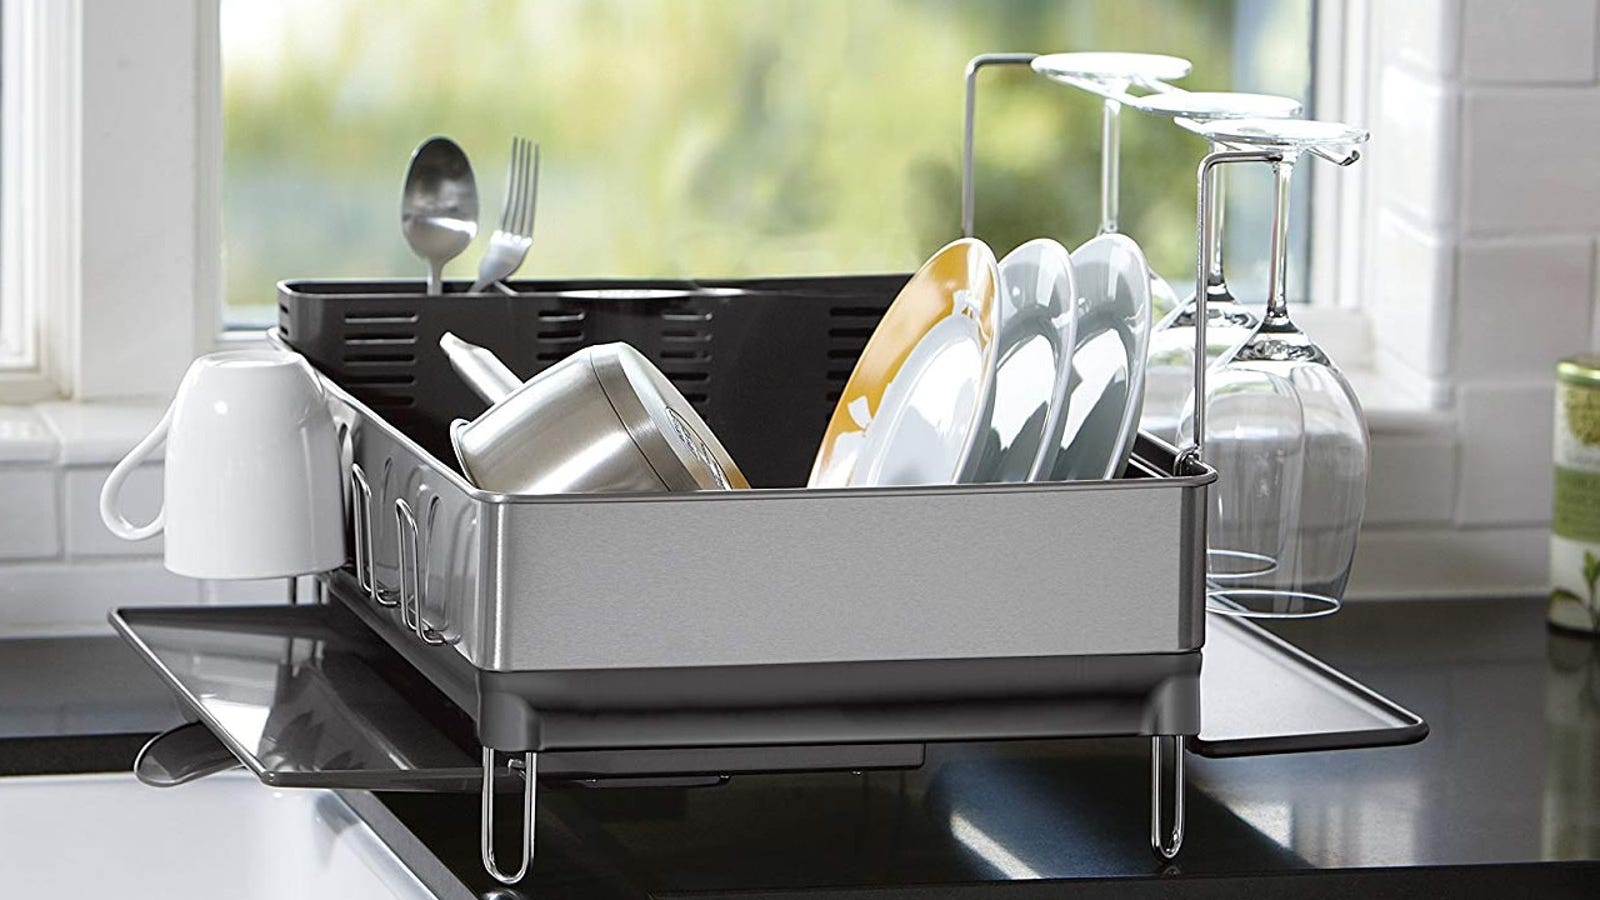 What's the Best Dish Drying Rack?